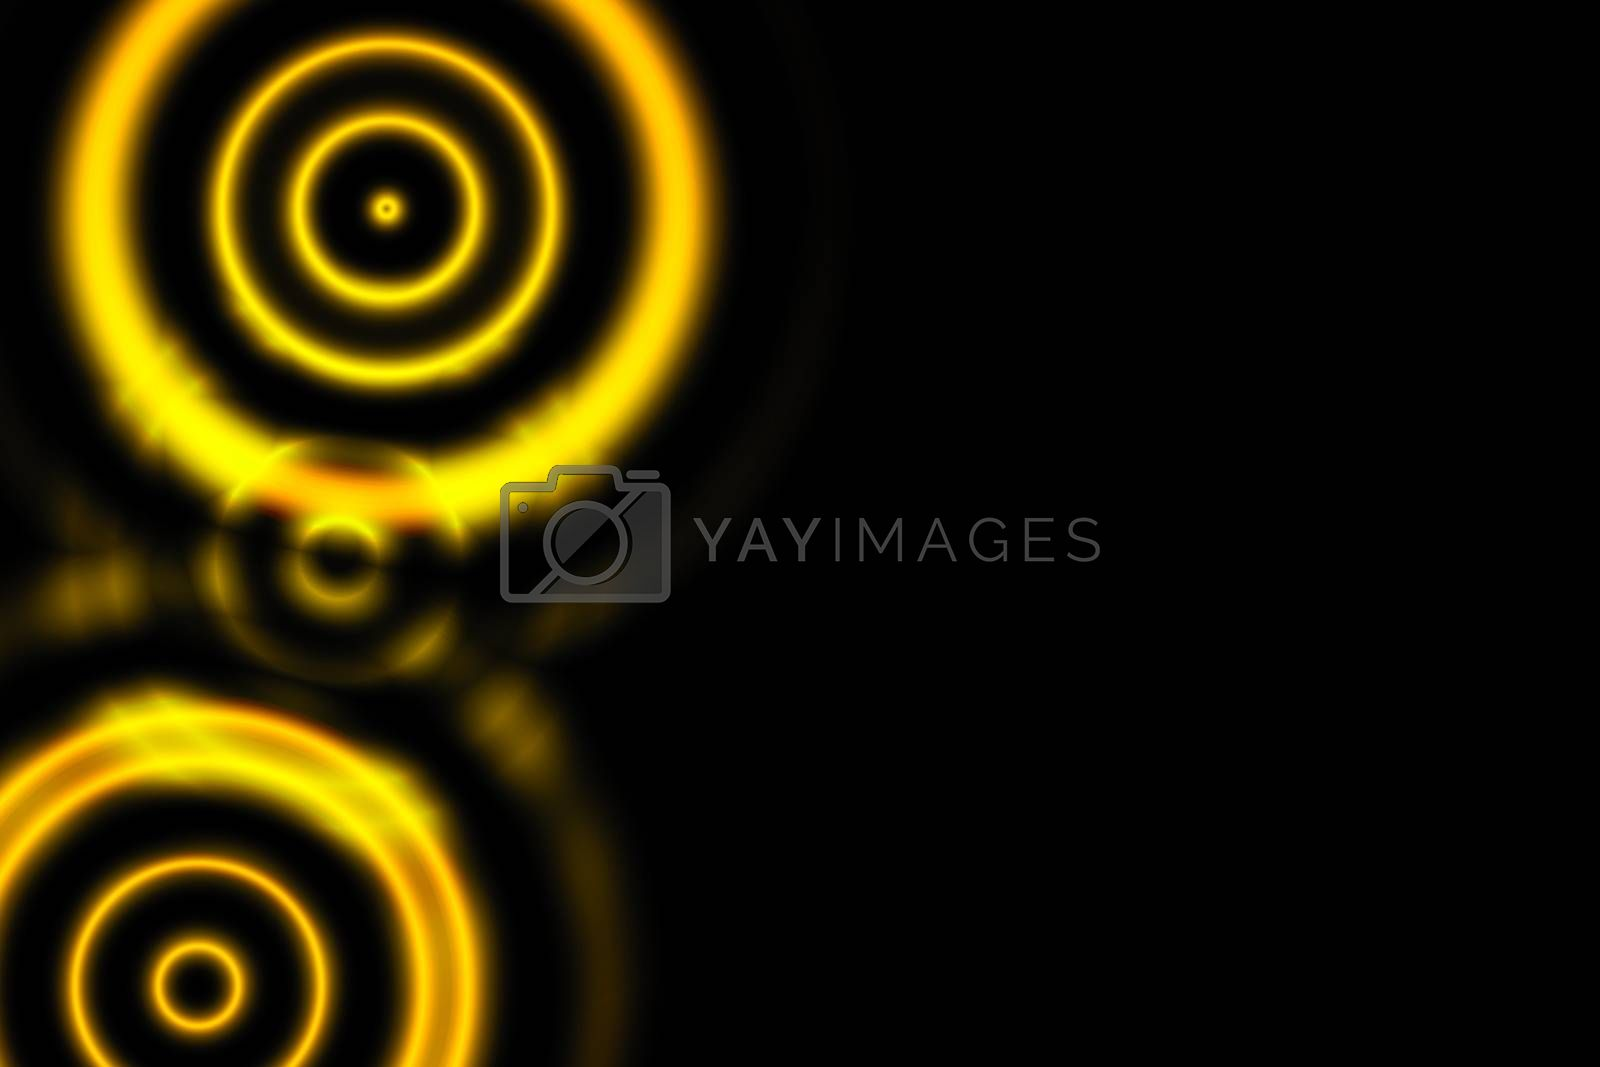 Orange overlapping circles with sound waves oscillating on black backdrop, abstract background